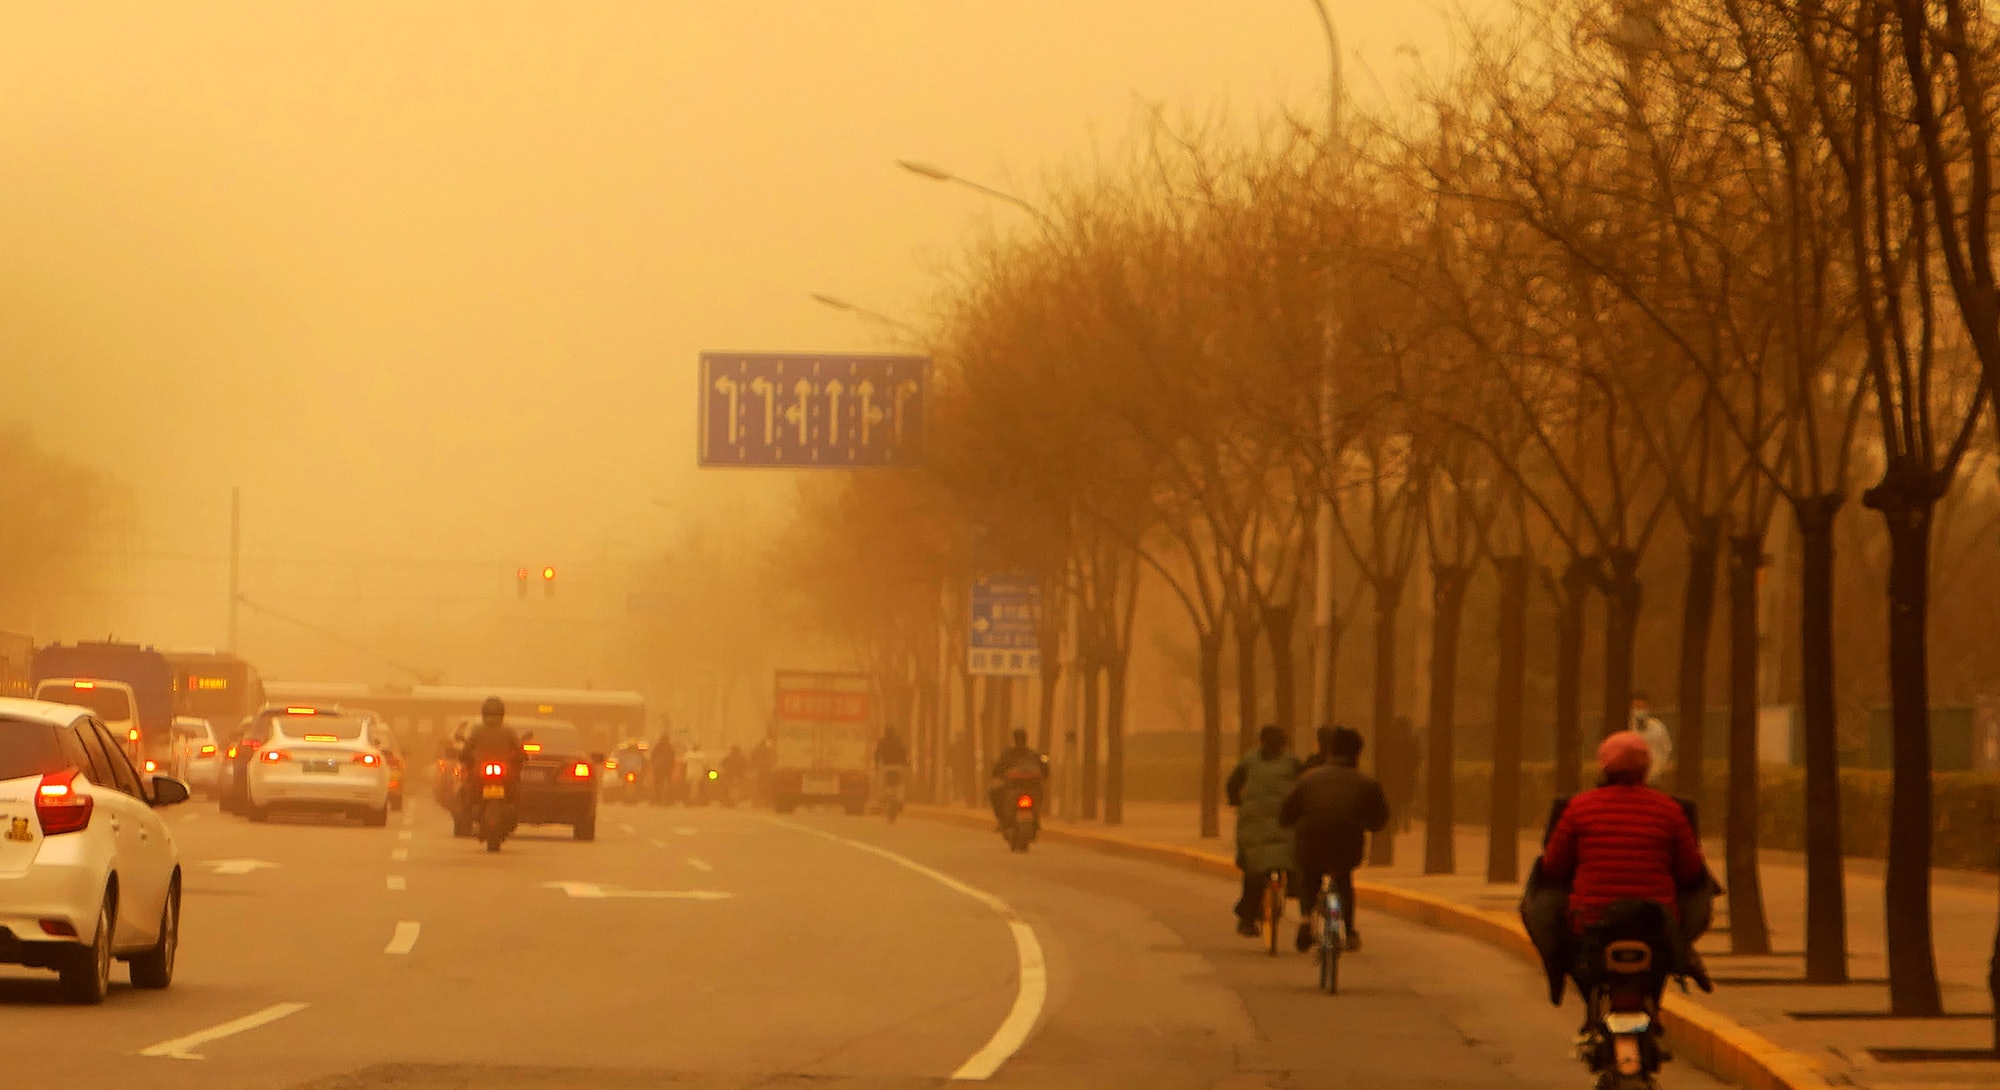 BEIJING, CHINA - MARCH 15, 2021 - A sandstorm hits Beijing, China, March 15, 2021.PHOTOGRAPH BY Costfoto / Barcroft Studios / Future Publishing (Photo credit should read Costfoto/Barcroft Media via Getty Images)